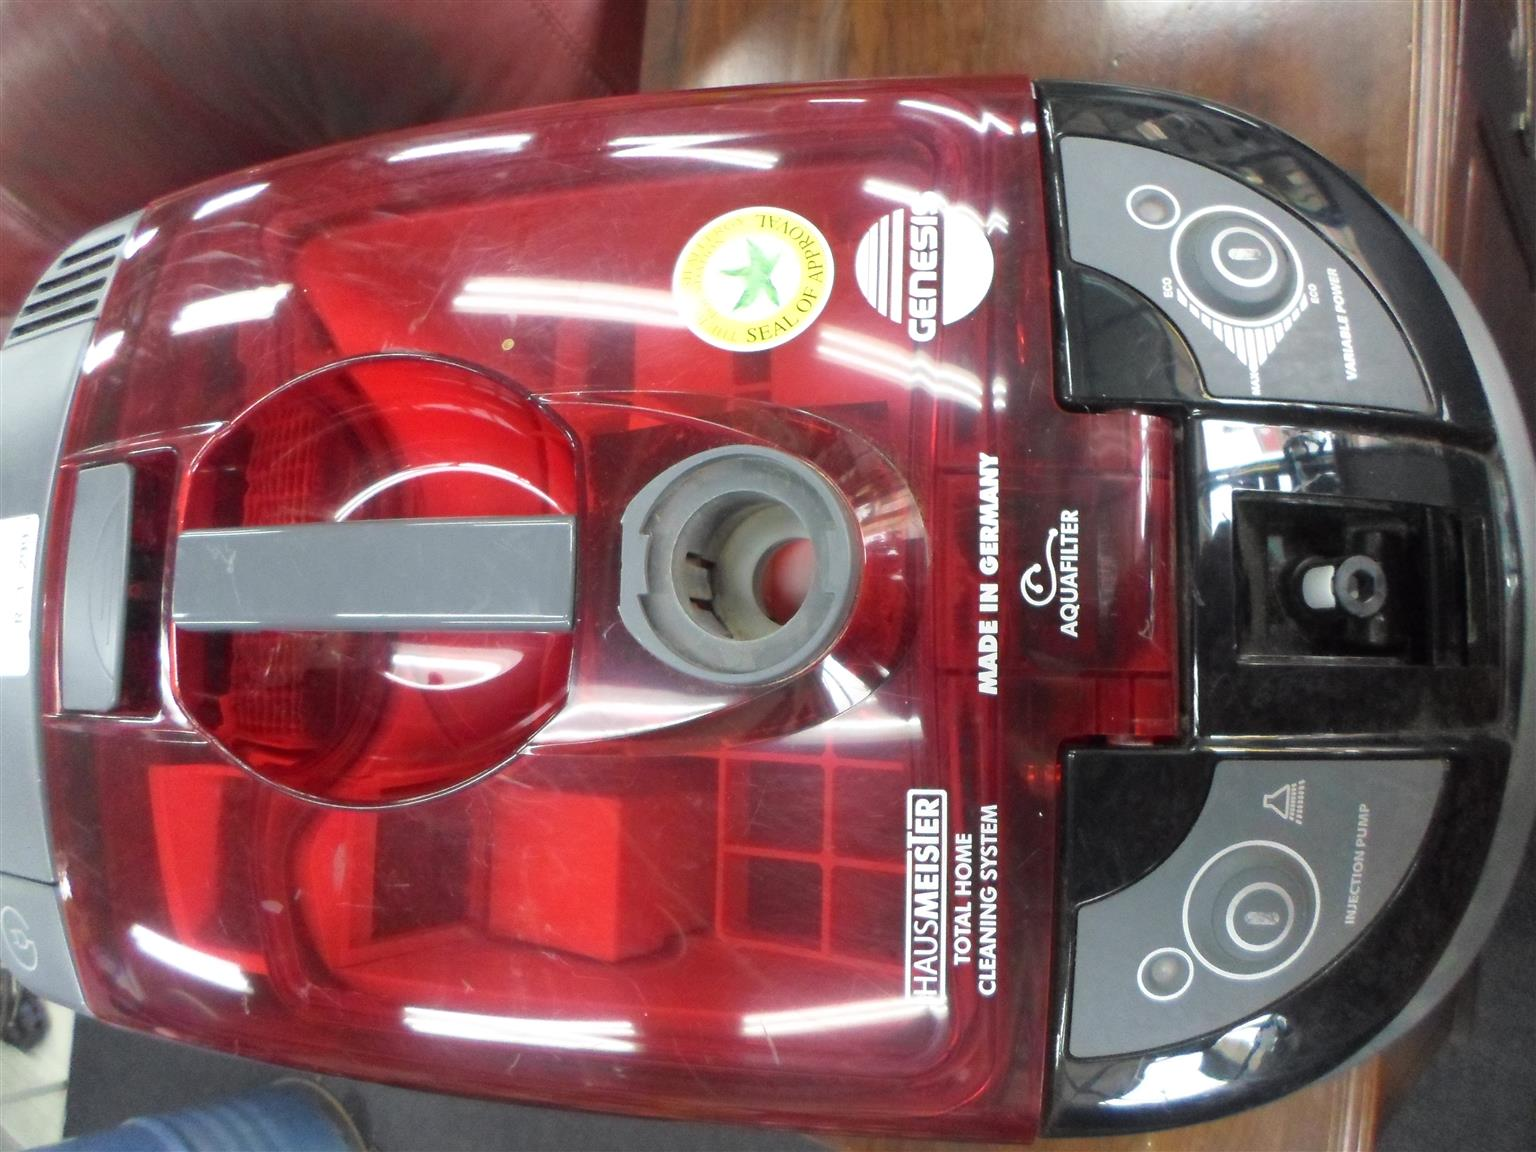 Genesis Hausmeister Total Home Cleaning System